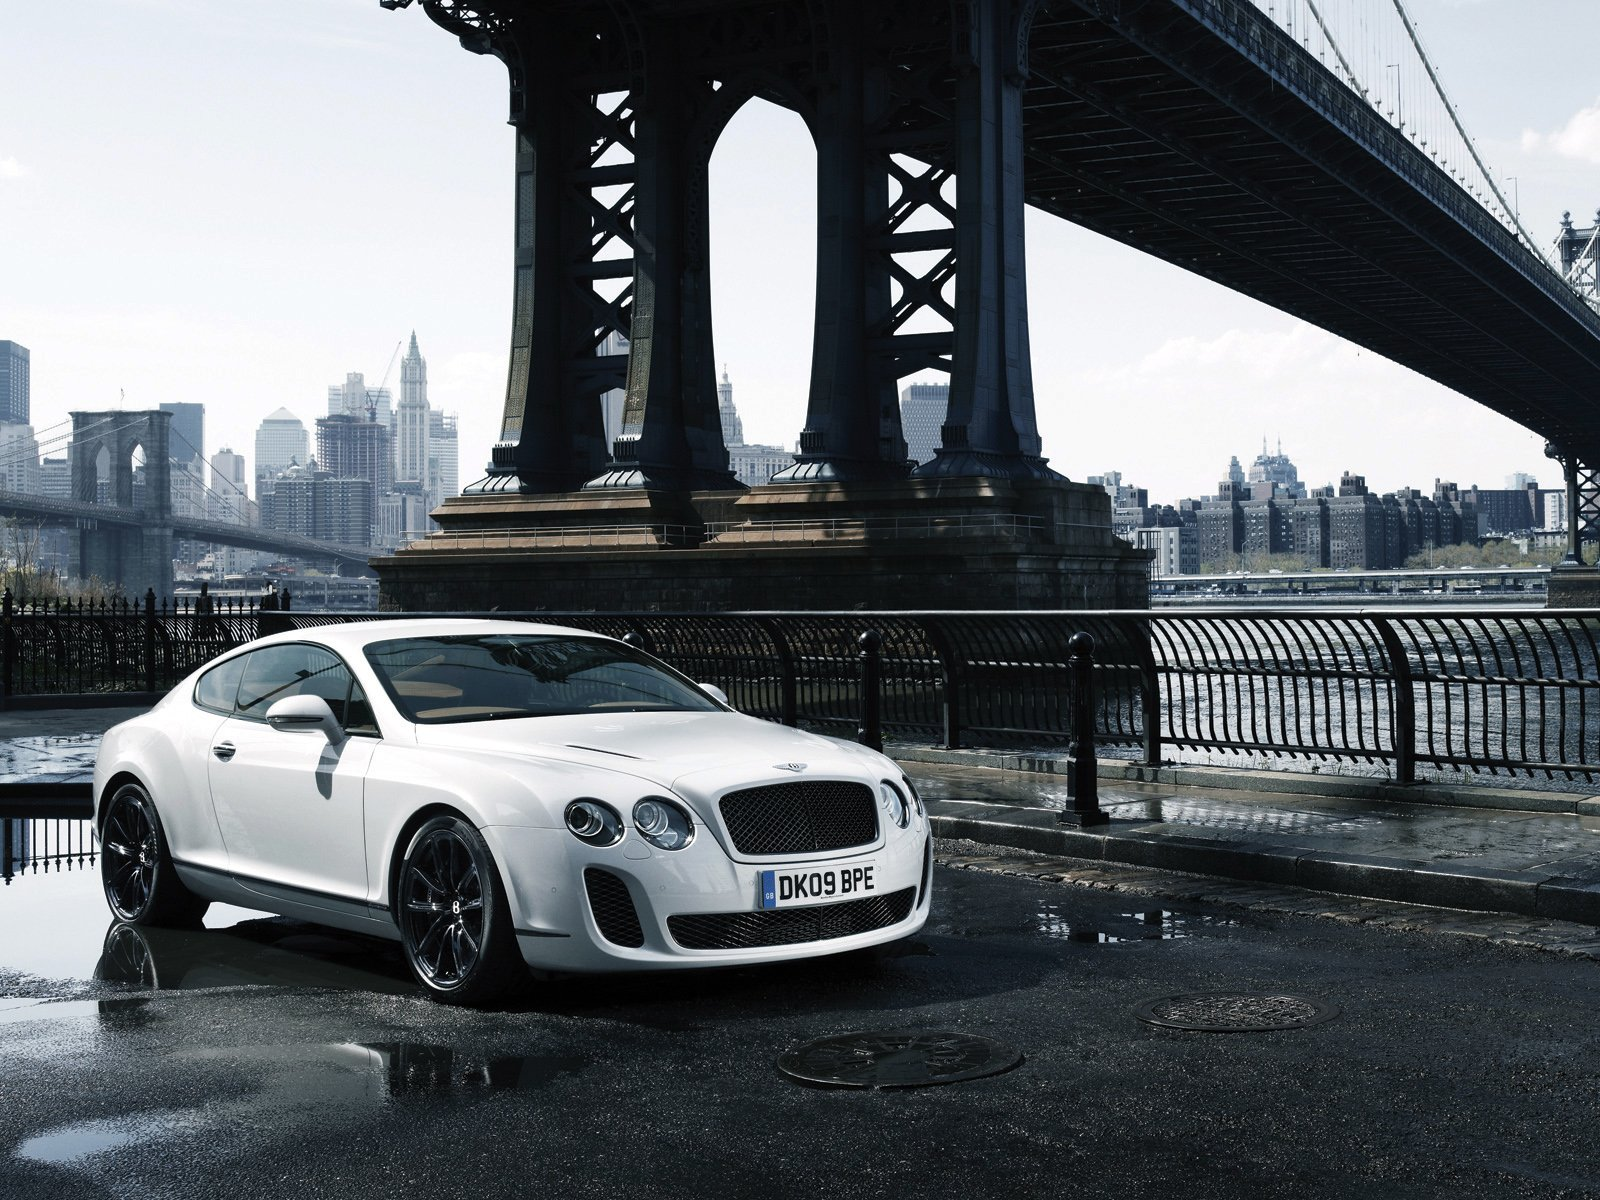 1600x1200 - Bentley Continental GT Wallpapers 11